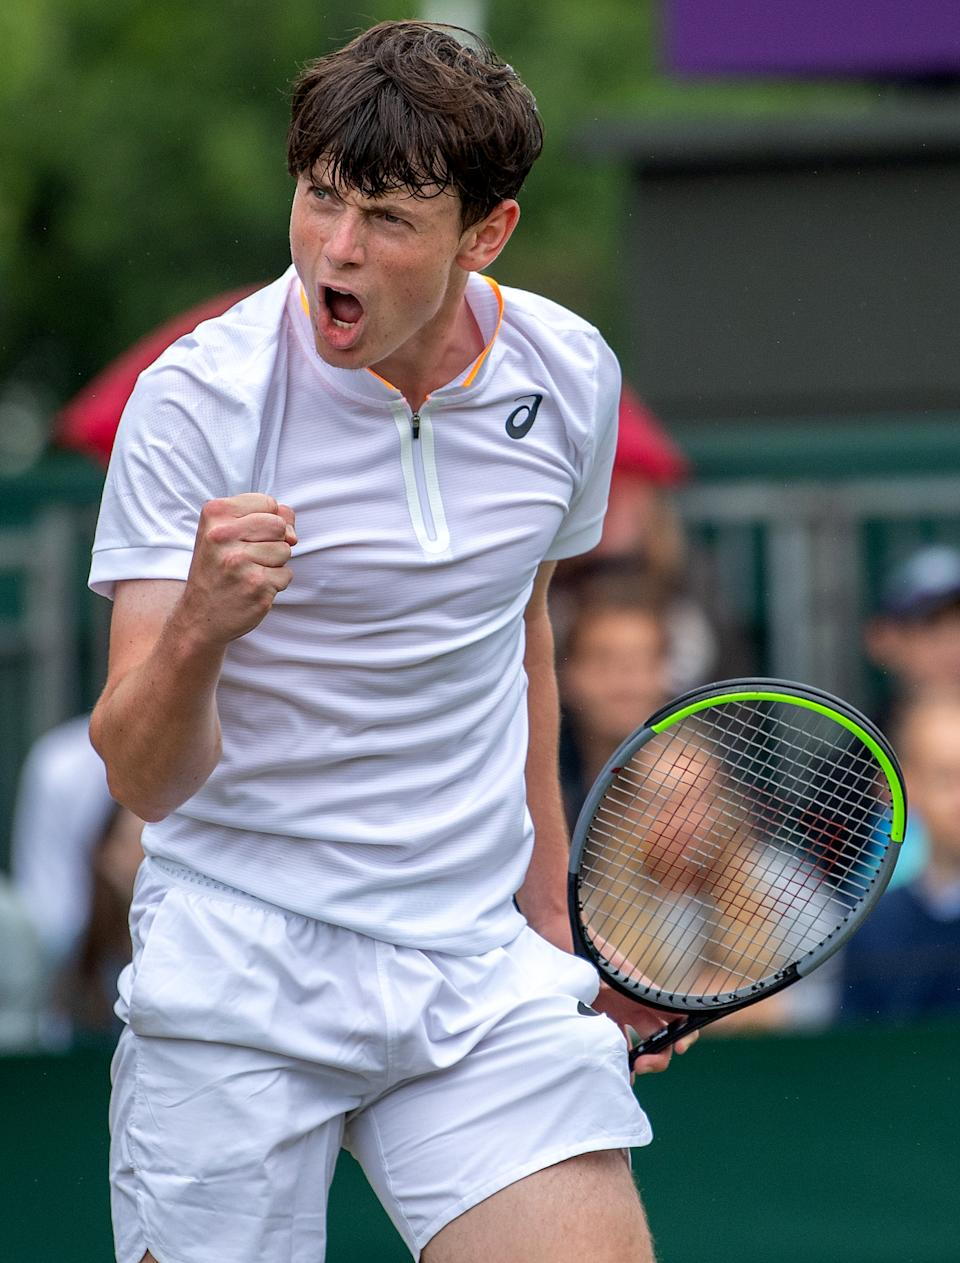 Jack Pinnington Jones in the Boys' Singles on Court 17 at The Championships 2021. Held at The All England Lawn Tennis Club, Wimbledon. Day 10 08/07/2021. Credit: AELTC/Jonathan Nackstrand